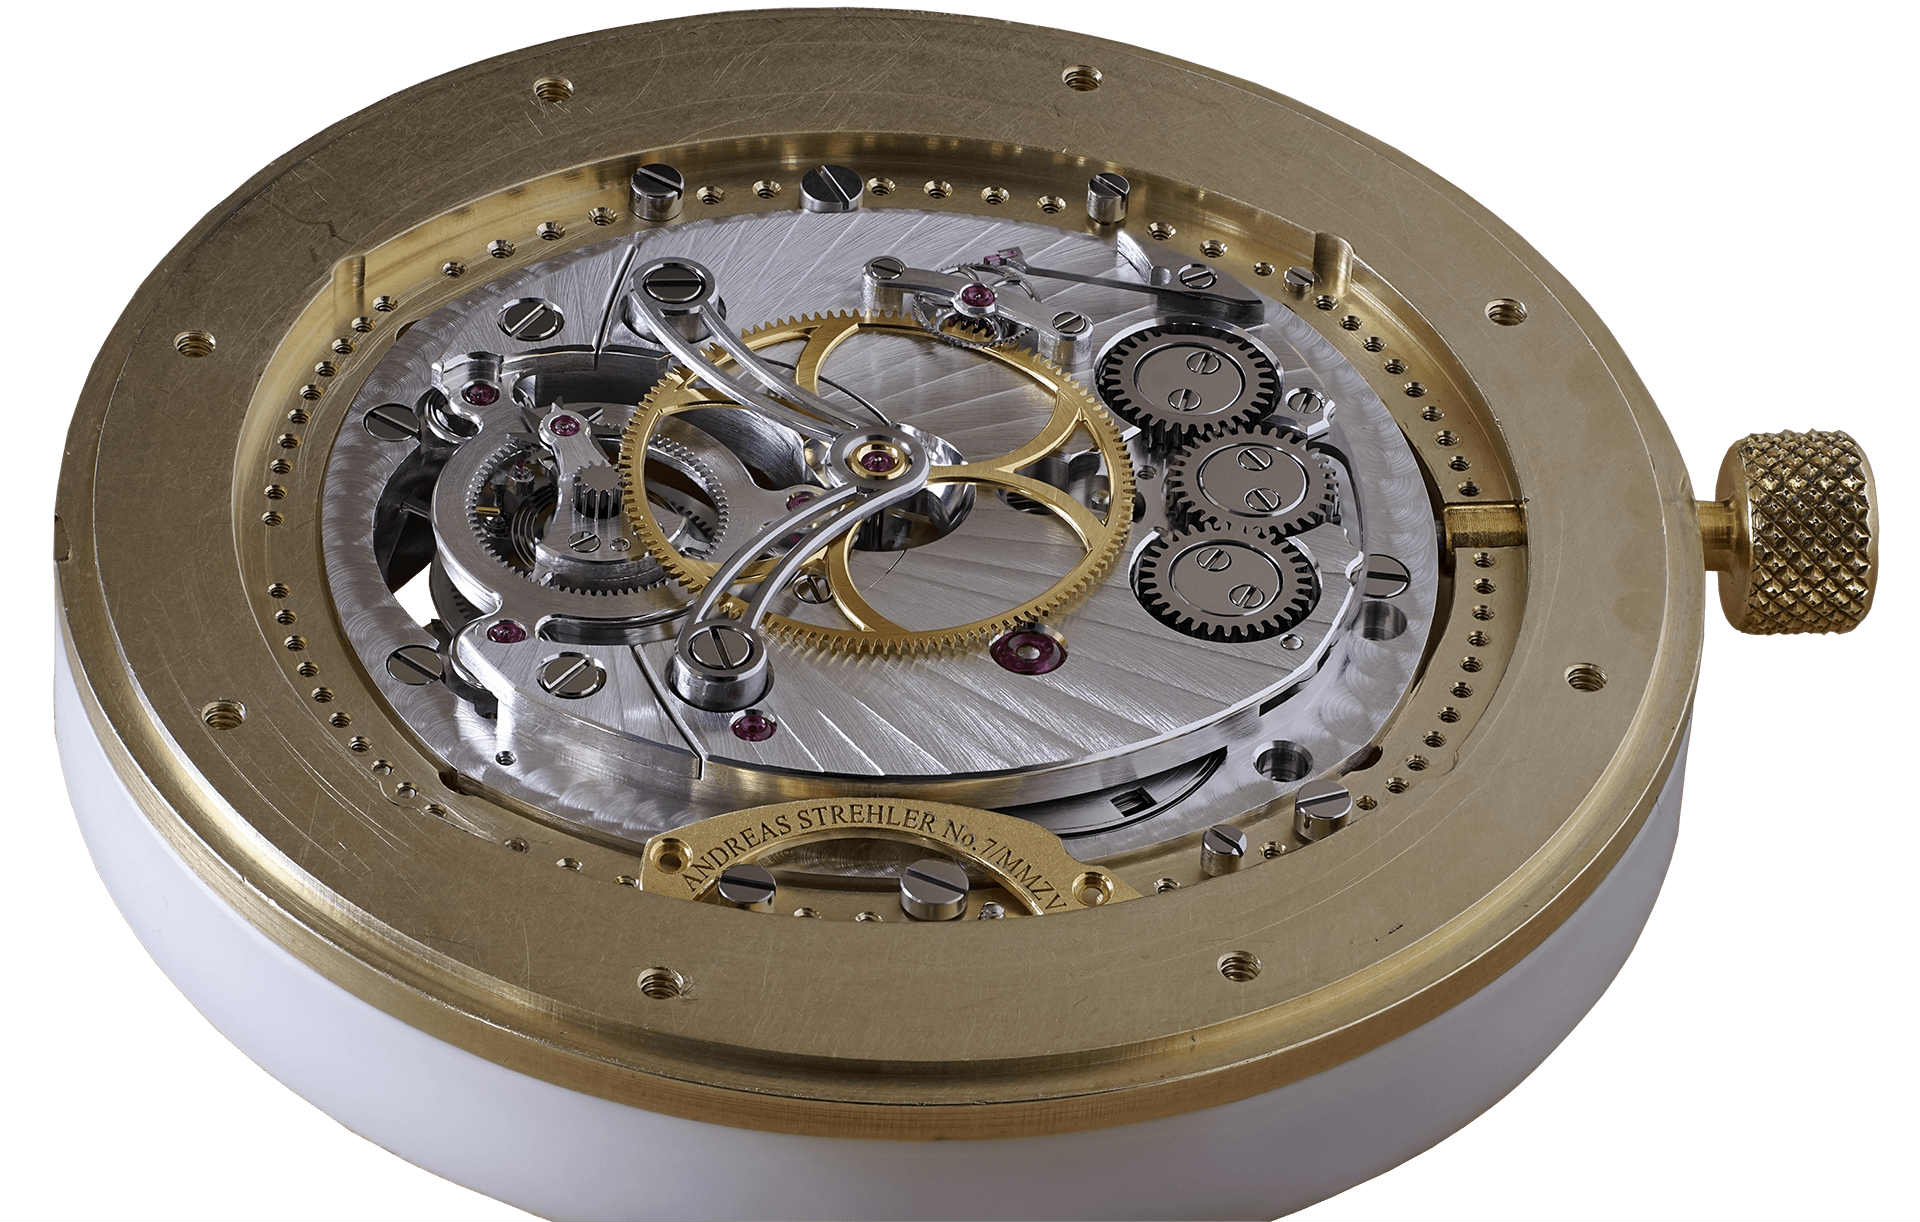 Andreas Strehler transaxle watch movement